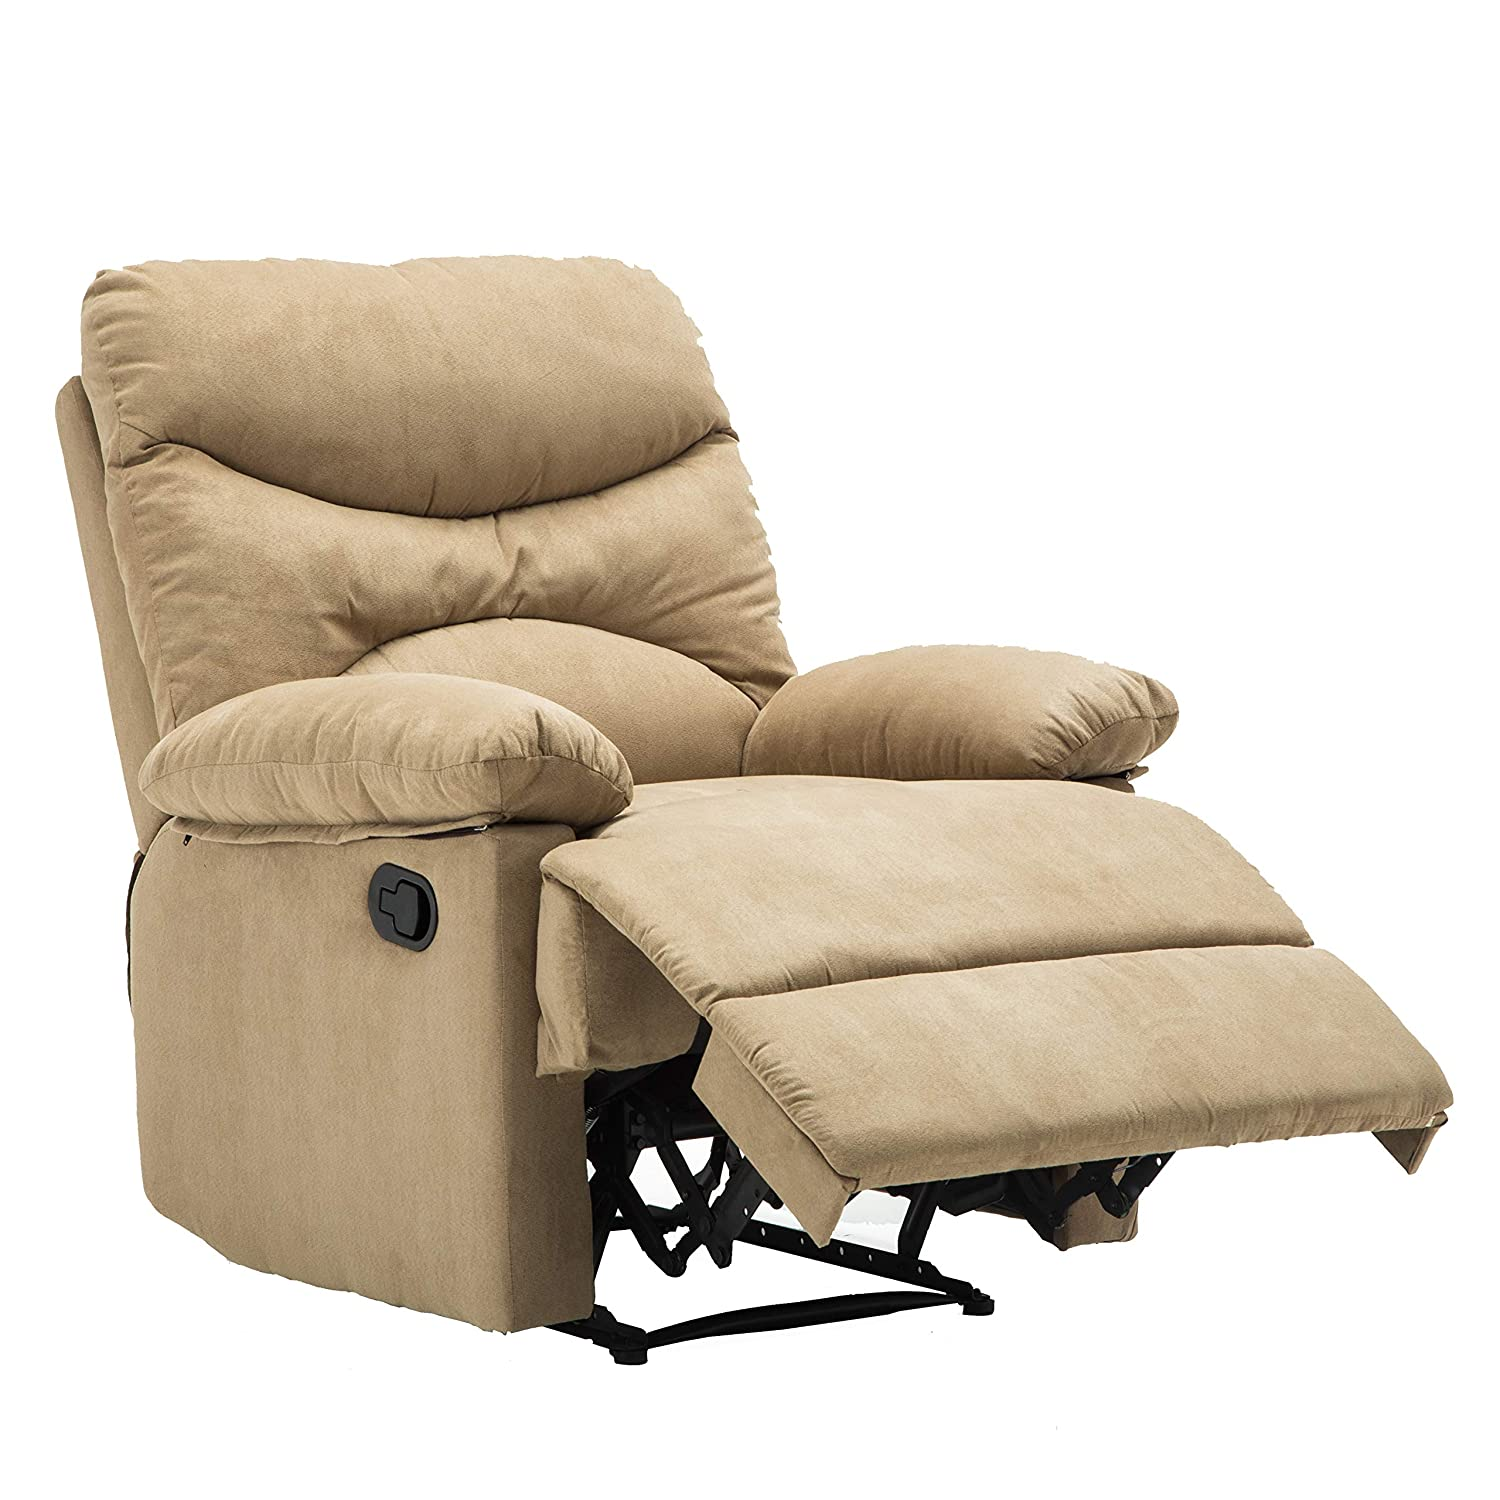 Amazon com windaze recliner chair massage heat lounge manual sofa chair microfiber ergonomic for living room beige kitchen dining